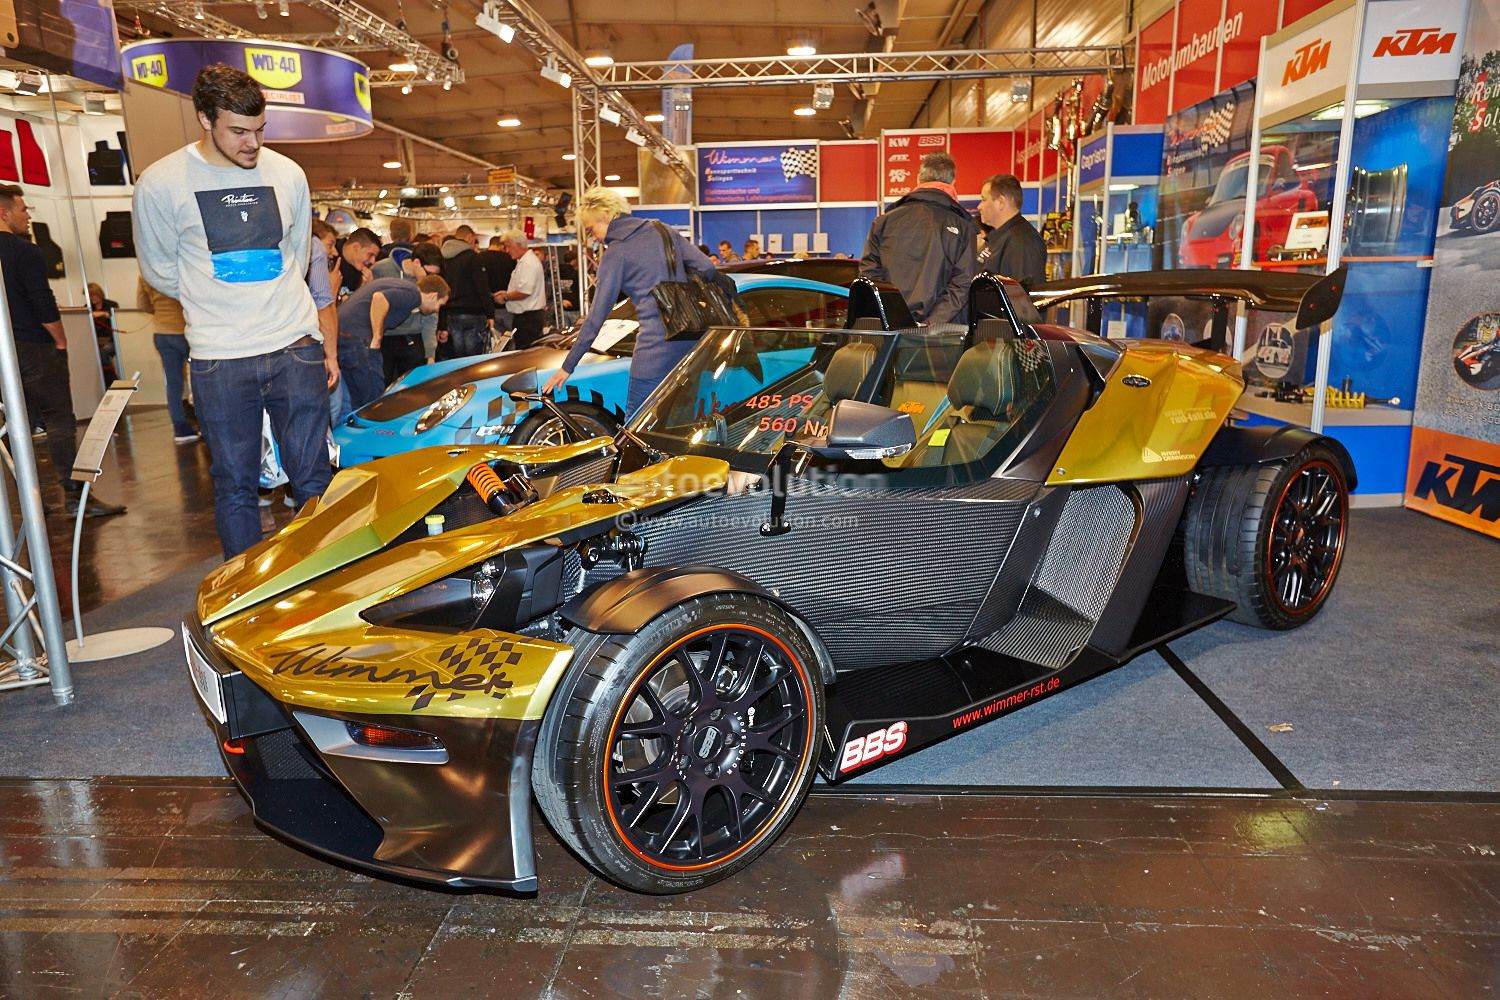 wimmer rs ktm x bow gt brings its 485 hp to the essen motor show 2014 live photos autoevolution. Black Bedroom Furniture Sets. Home Design Ideas